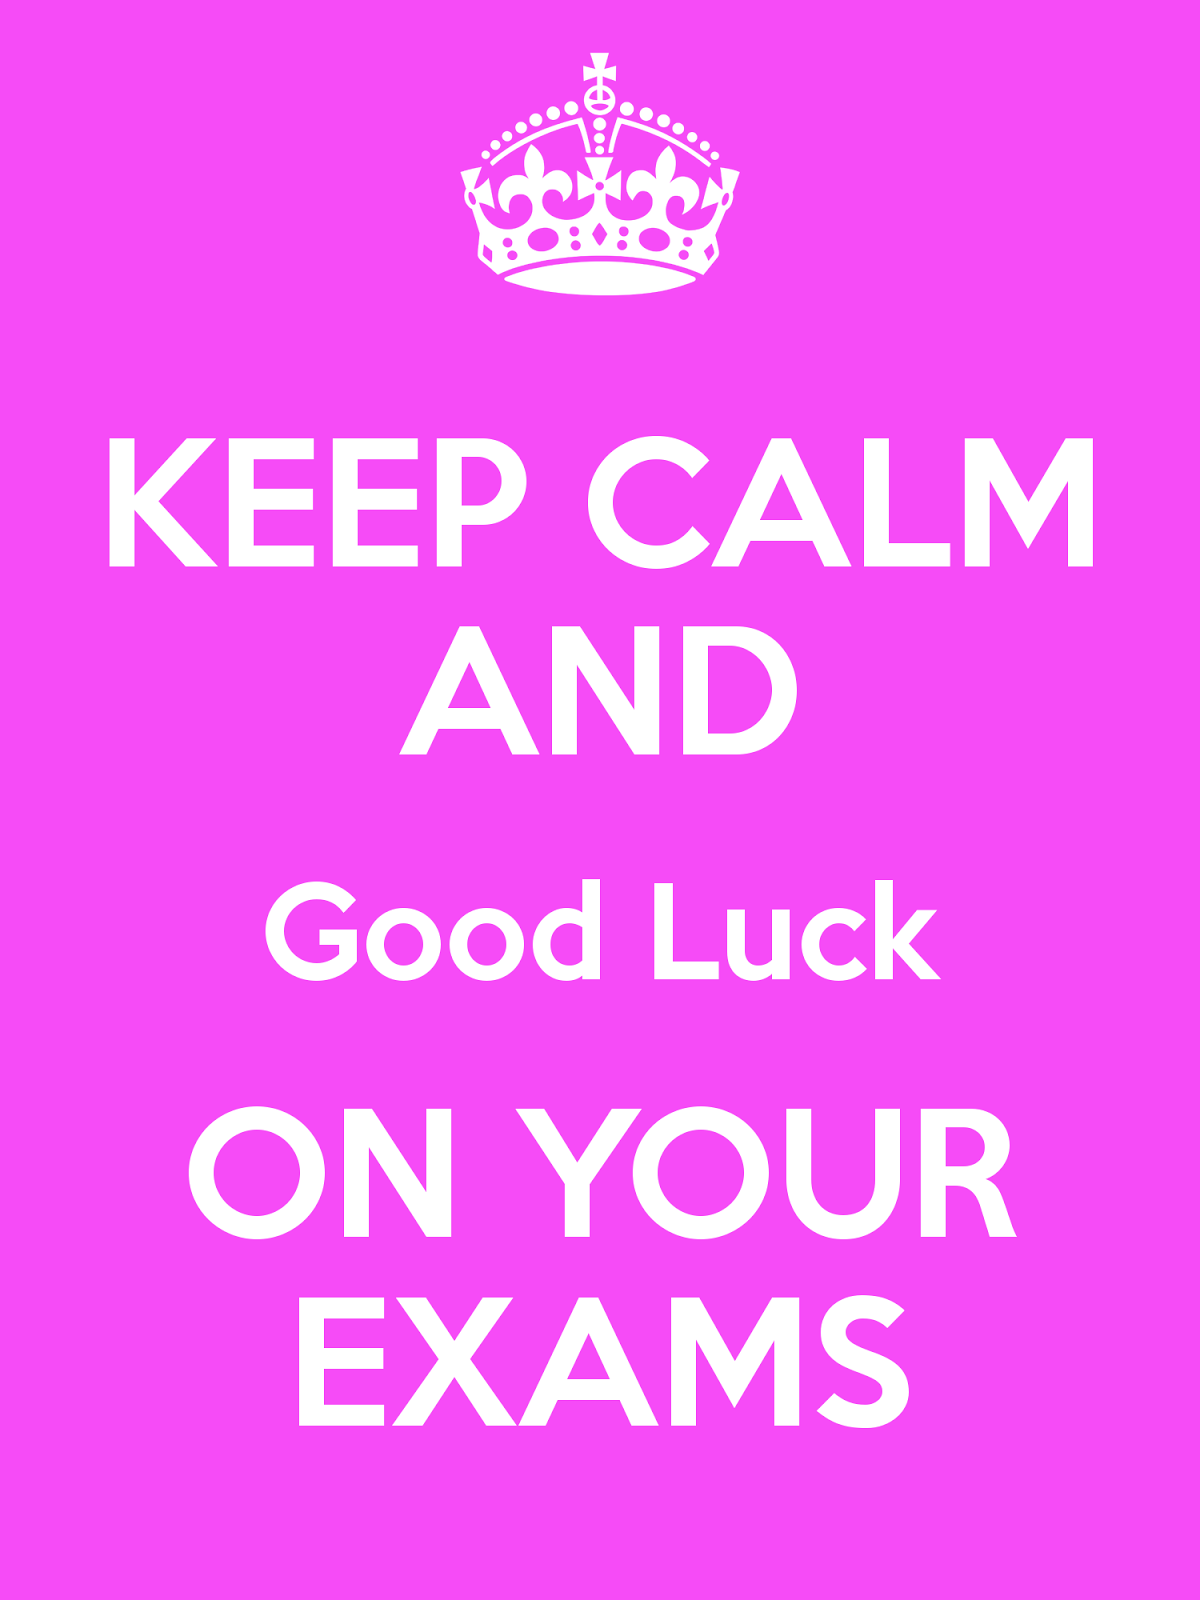 good luck in your exams card temptationgifts com good luck in your exams card temptationgifts com product pigment happy jackson good luck in your exams greeting card html pound1 98 math